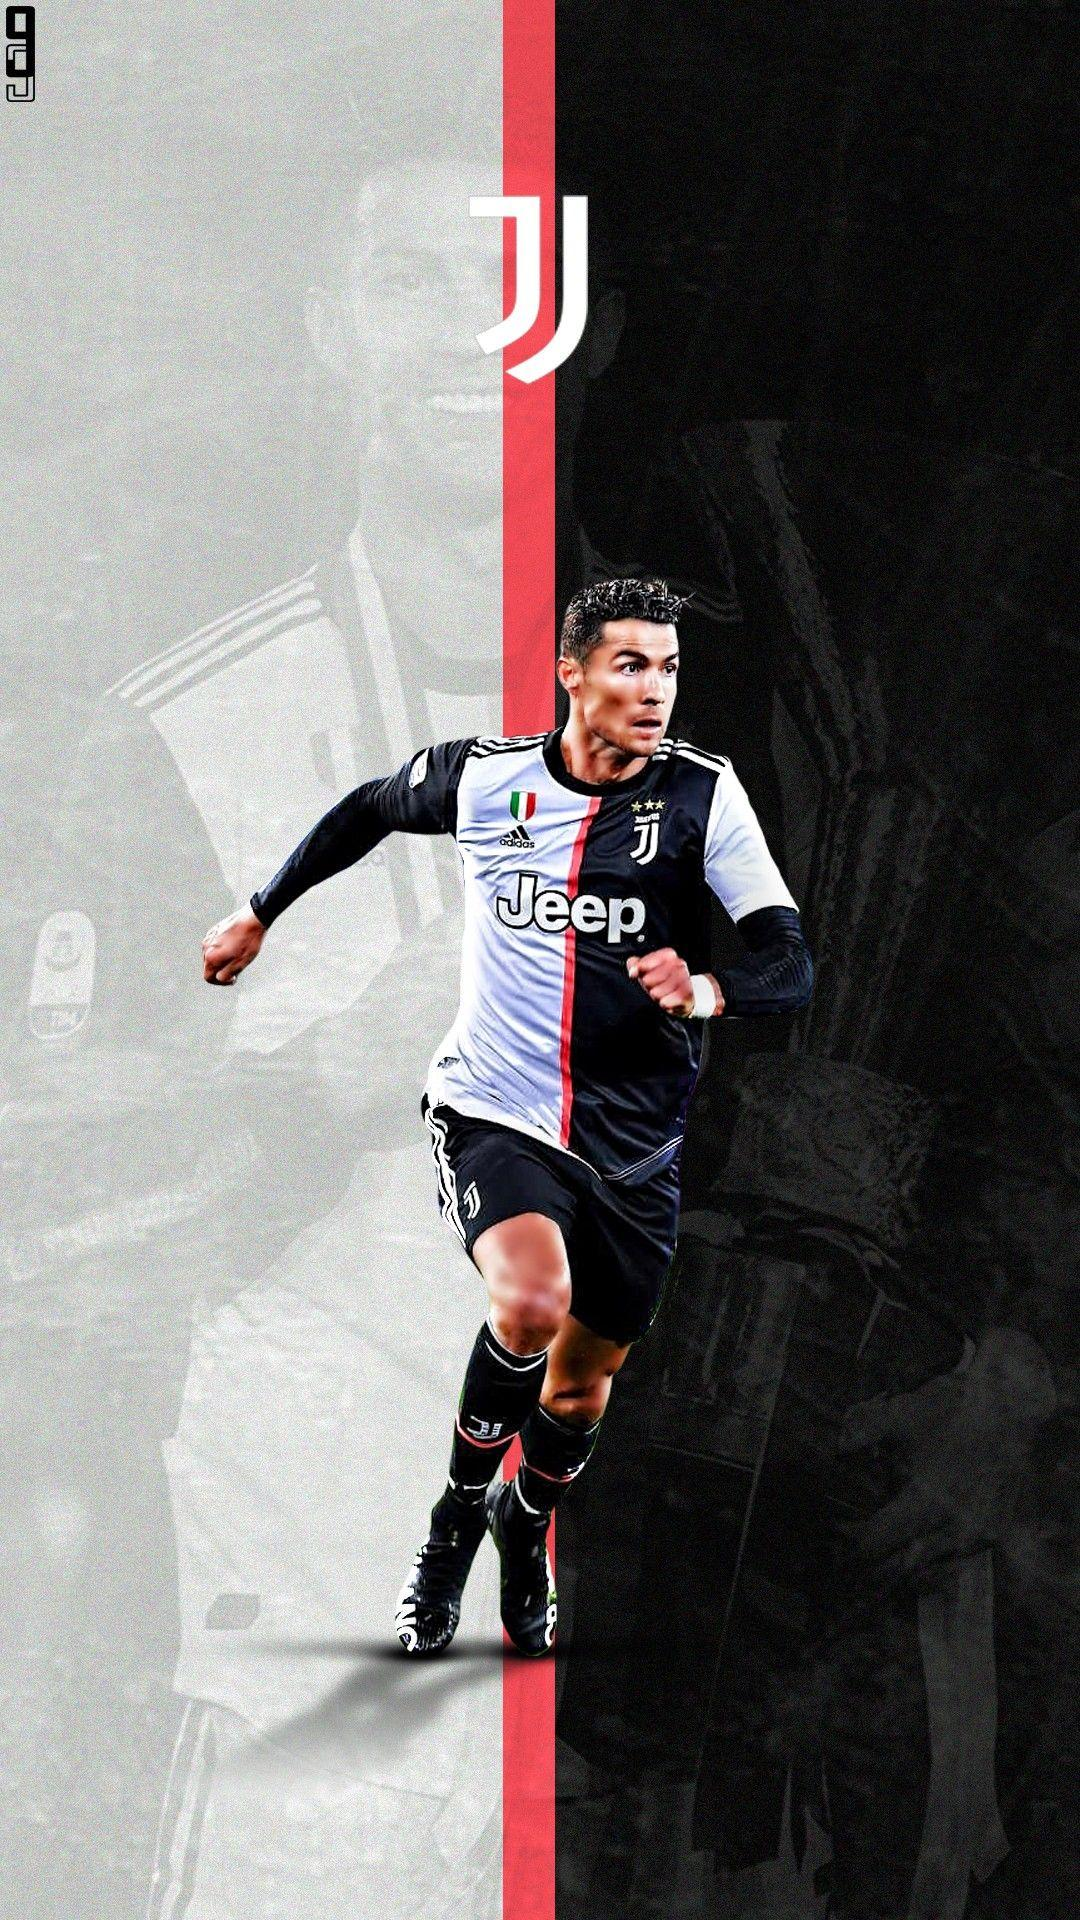 Ronaldo 2020 Wallpapers Top Free Ronaldo 2020 Backgrounds Wallpaperaccess